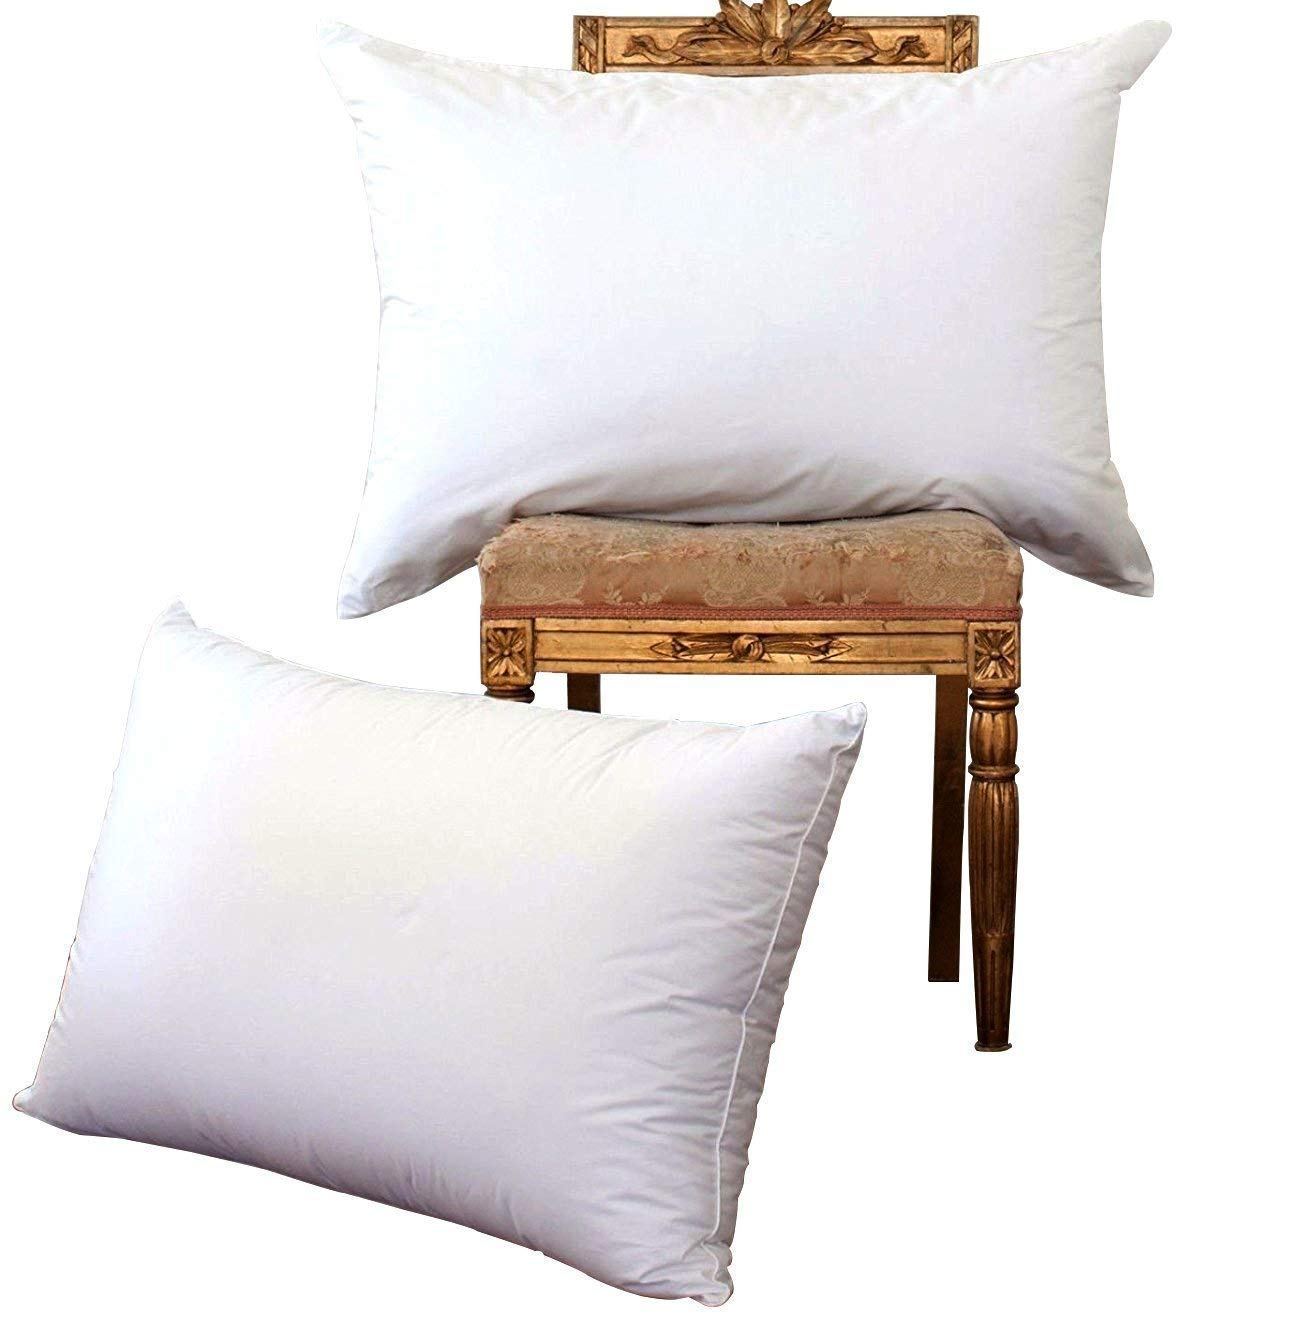 NP luxury White Goose down pillow(2-pack,Queen,Soft) 100% Egyptian Cotton Cover,1200 Thread Count,Bed pillows for Sleeping,Hypoallergenic by NP